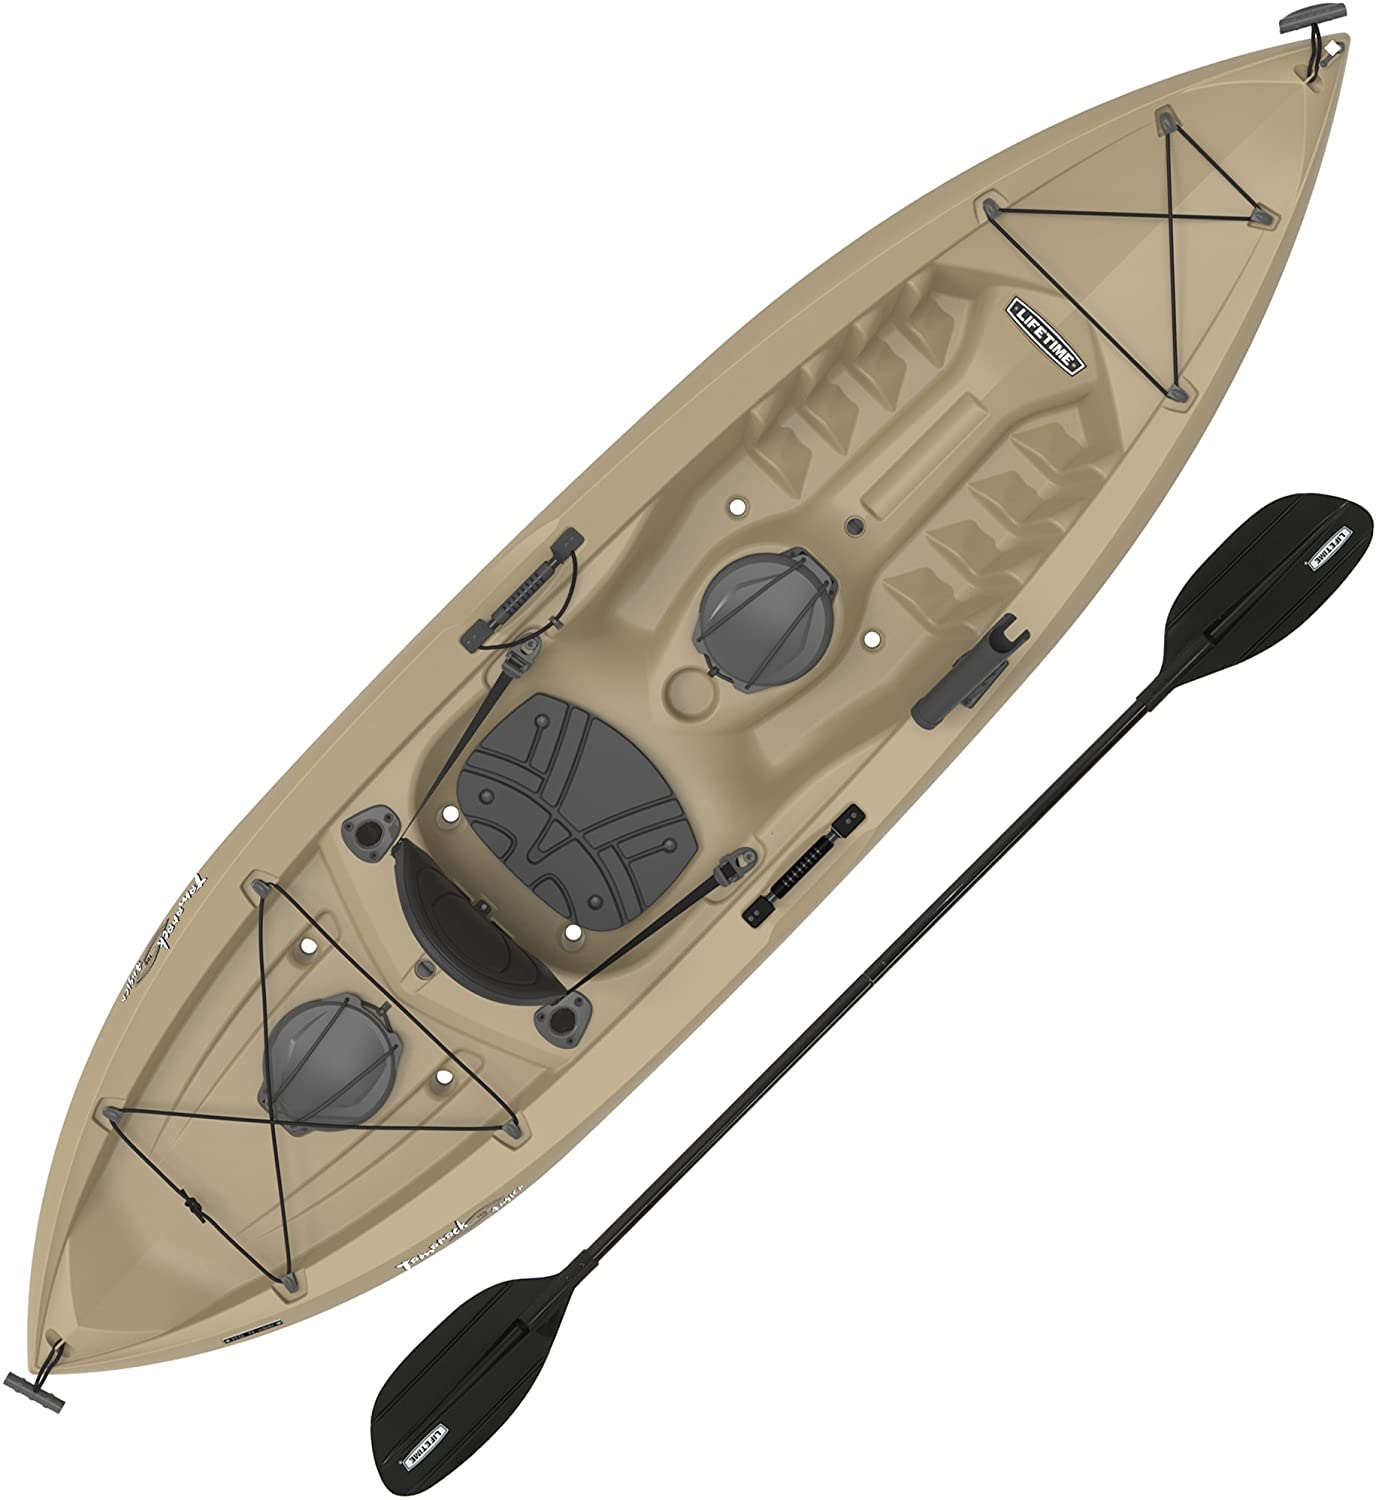 Lifetime Tamarack Angler 100 Sit On Top Fishing Kayak